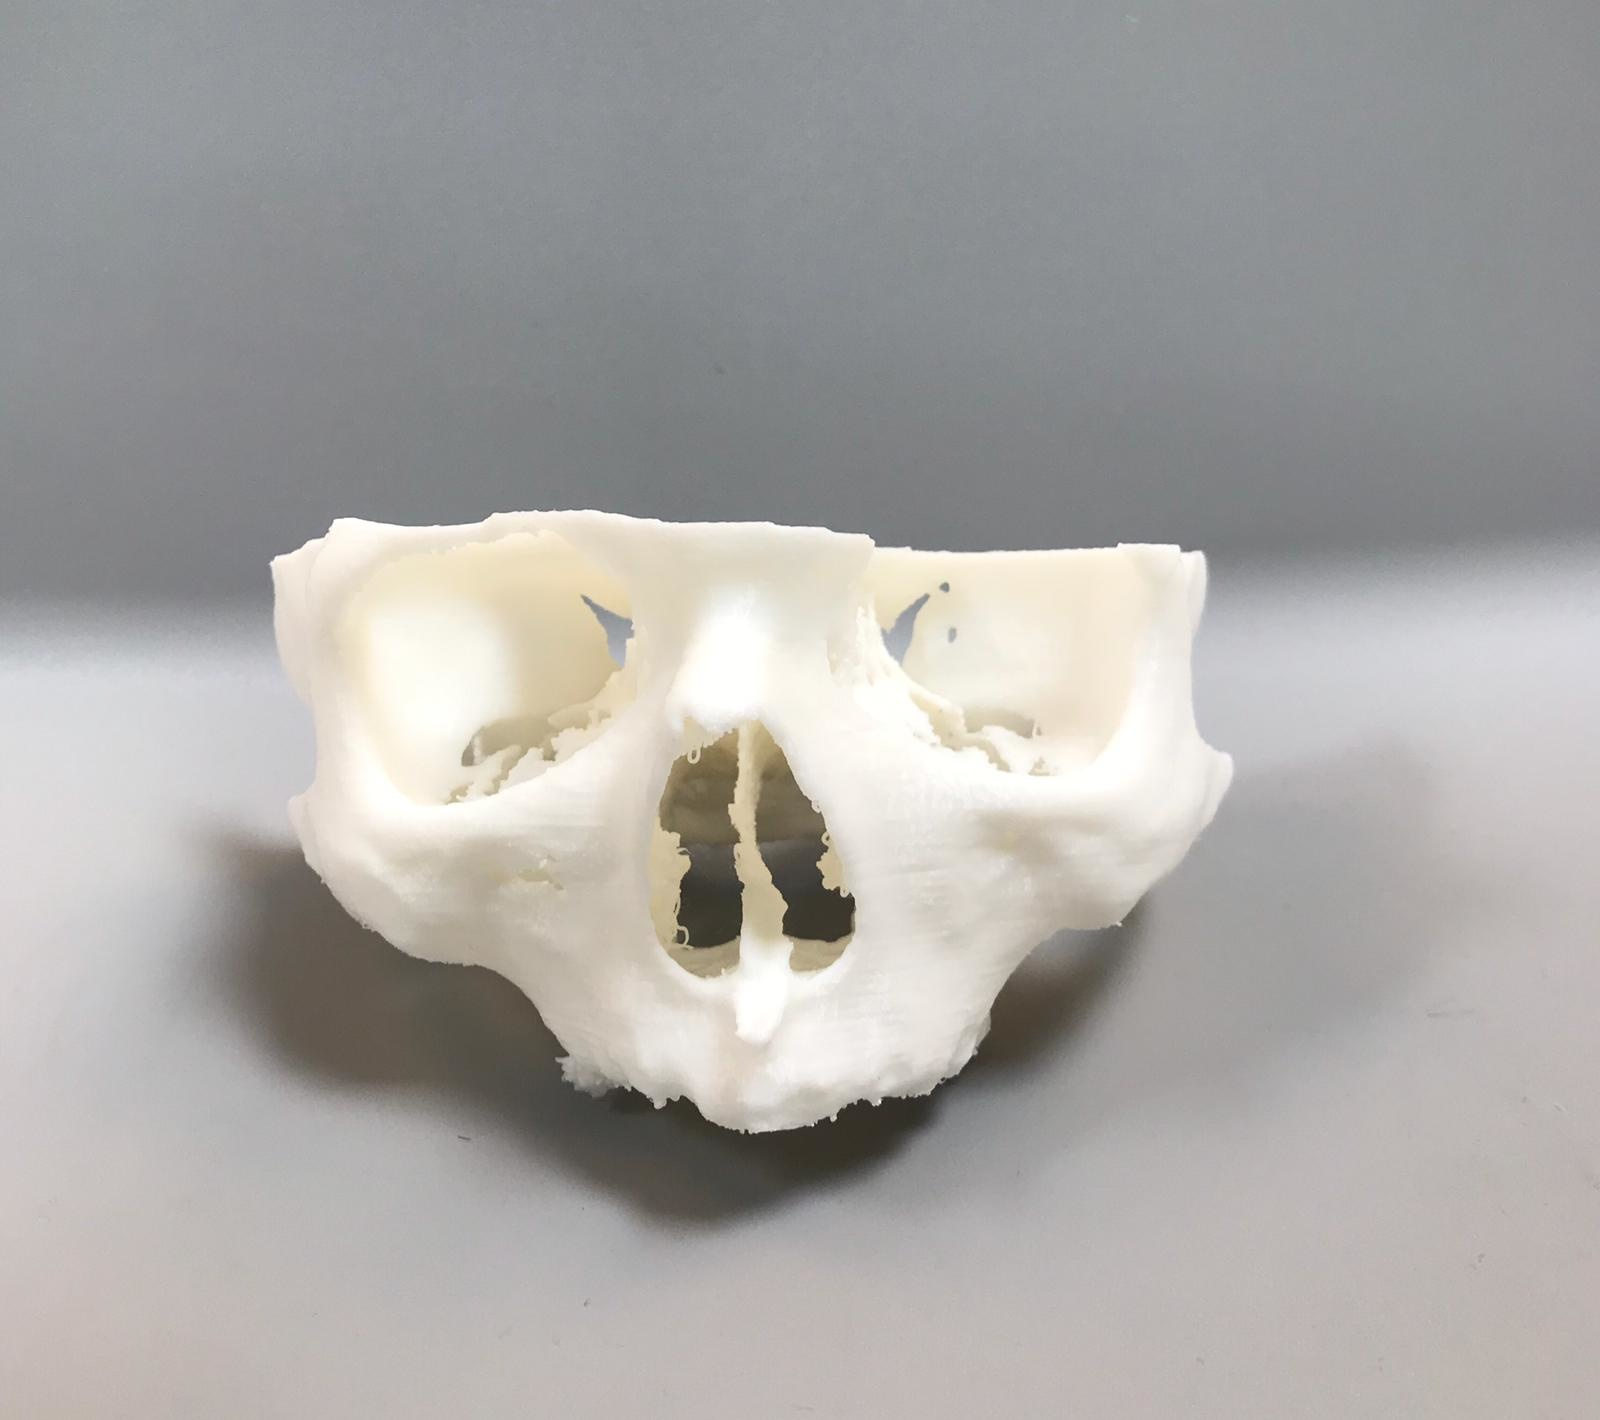 3D printed upper jaw model